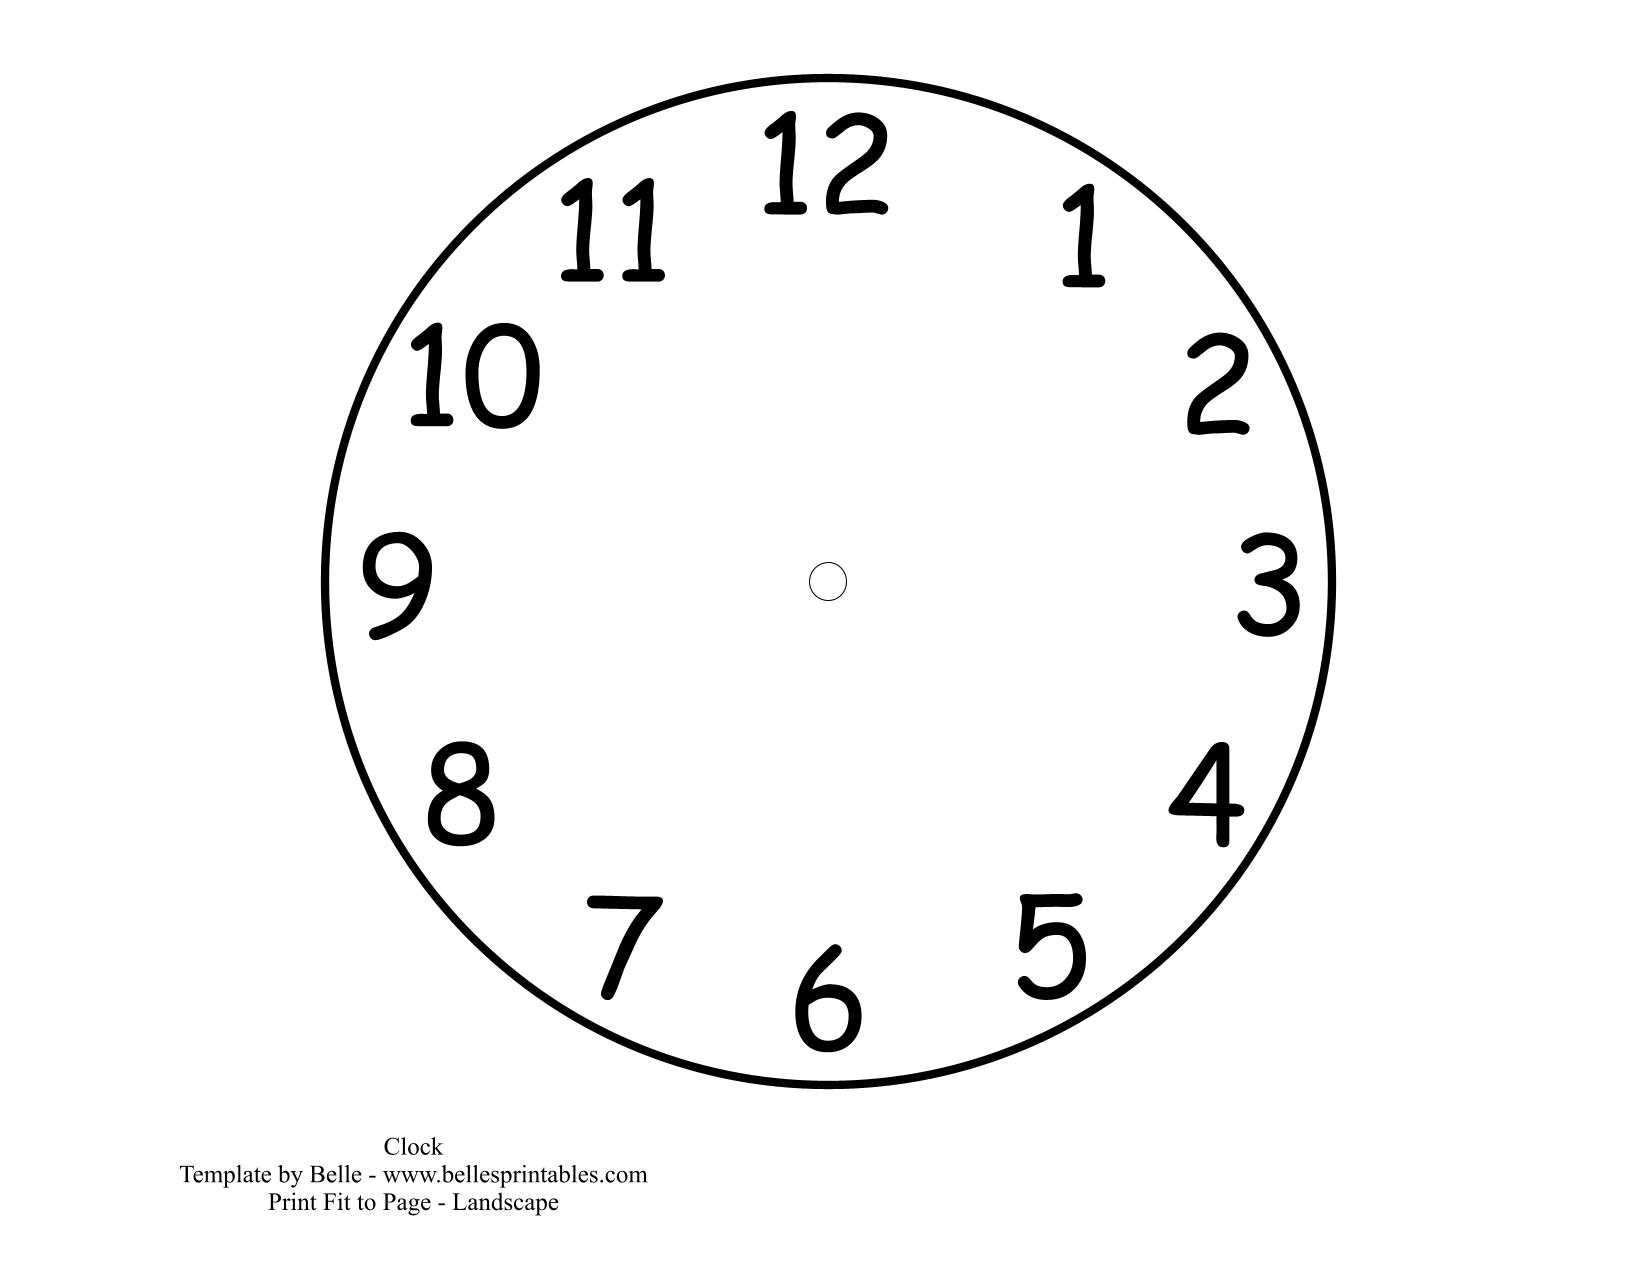 Free Clock Bud S Template Printable